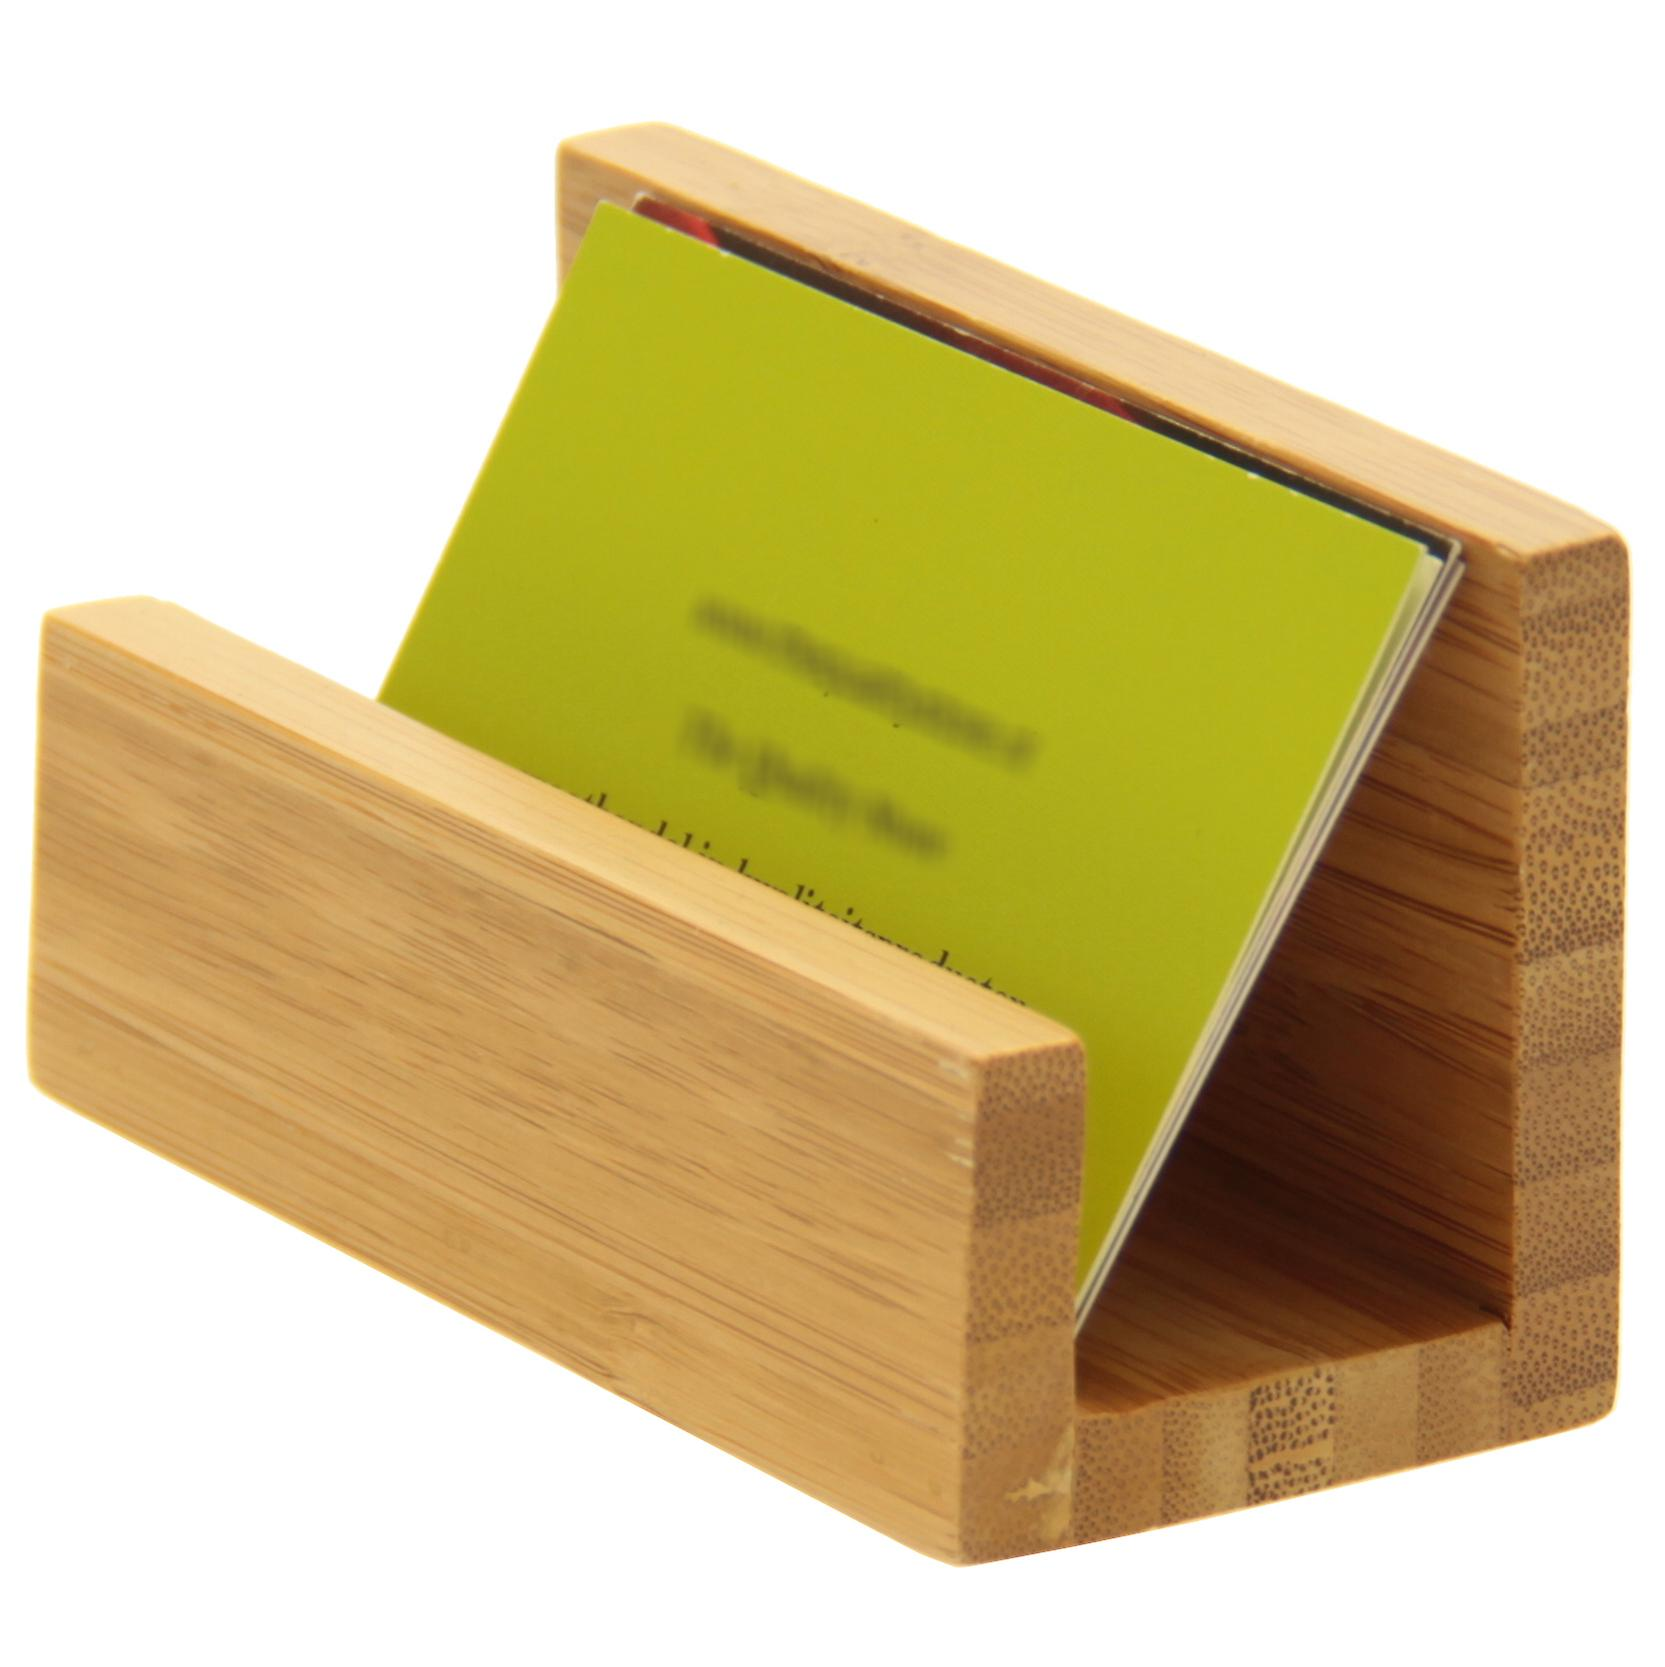 Woodquail Bamboo Business Card Holder, Desk Tidy